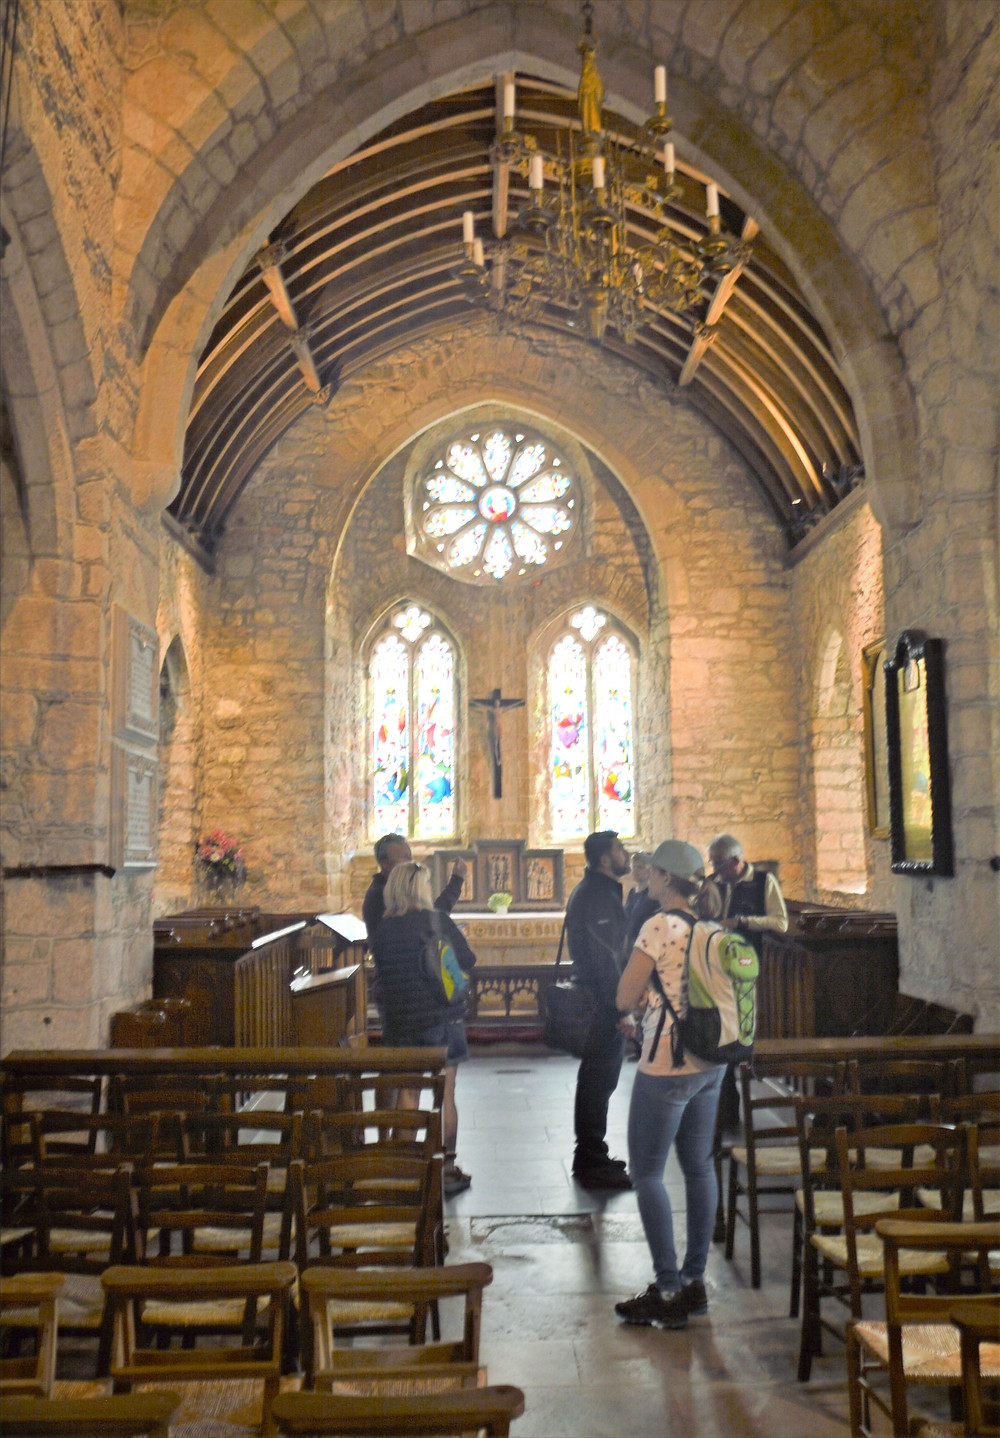 Inside the church of St. Michael within the St Michael's Mount Castle